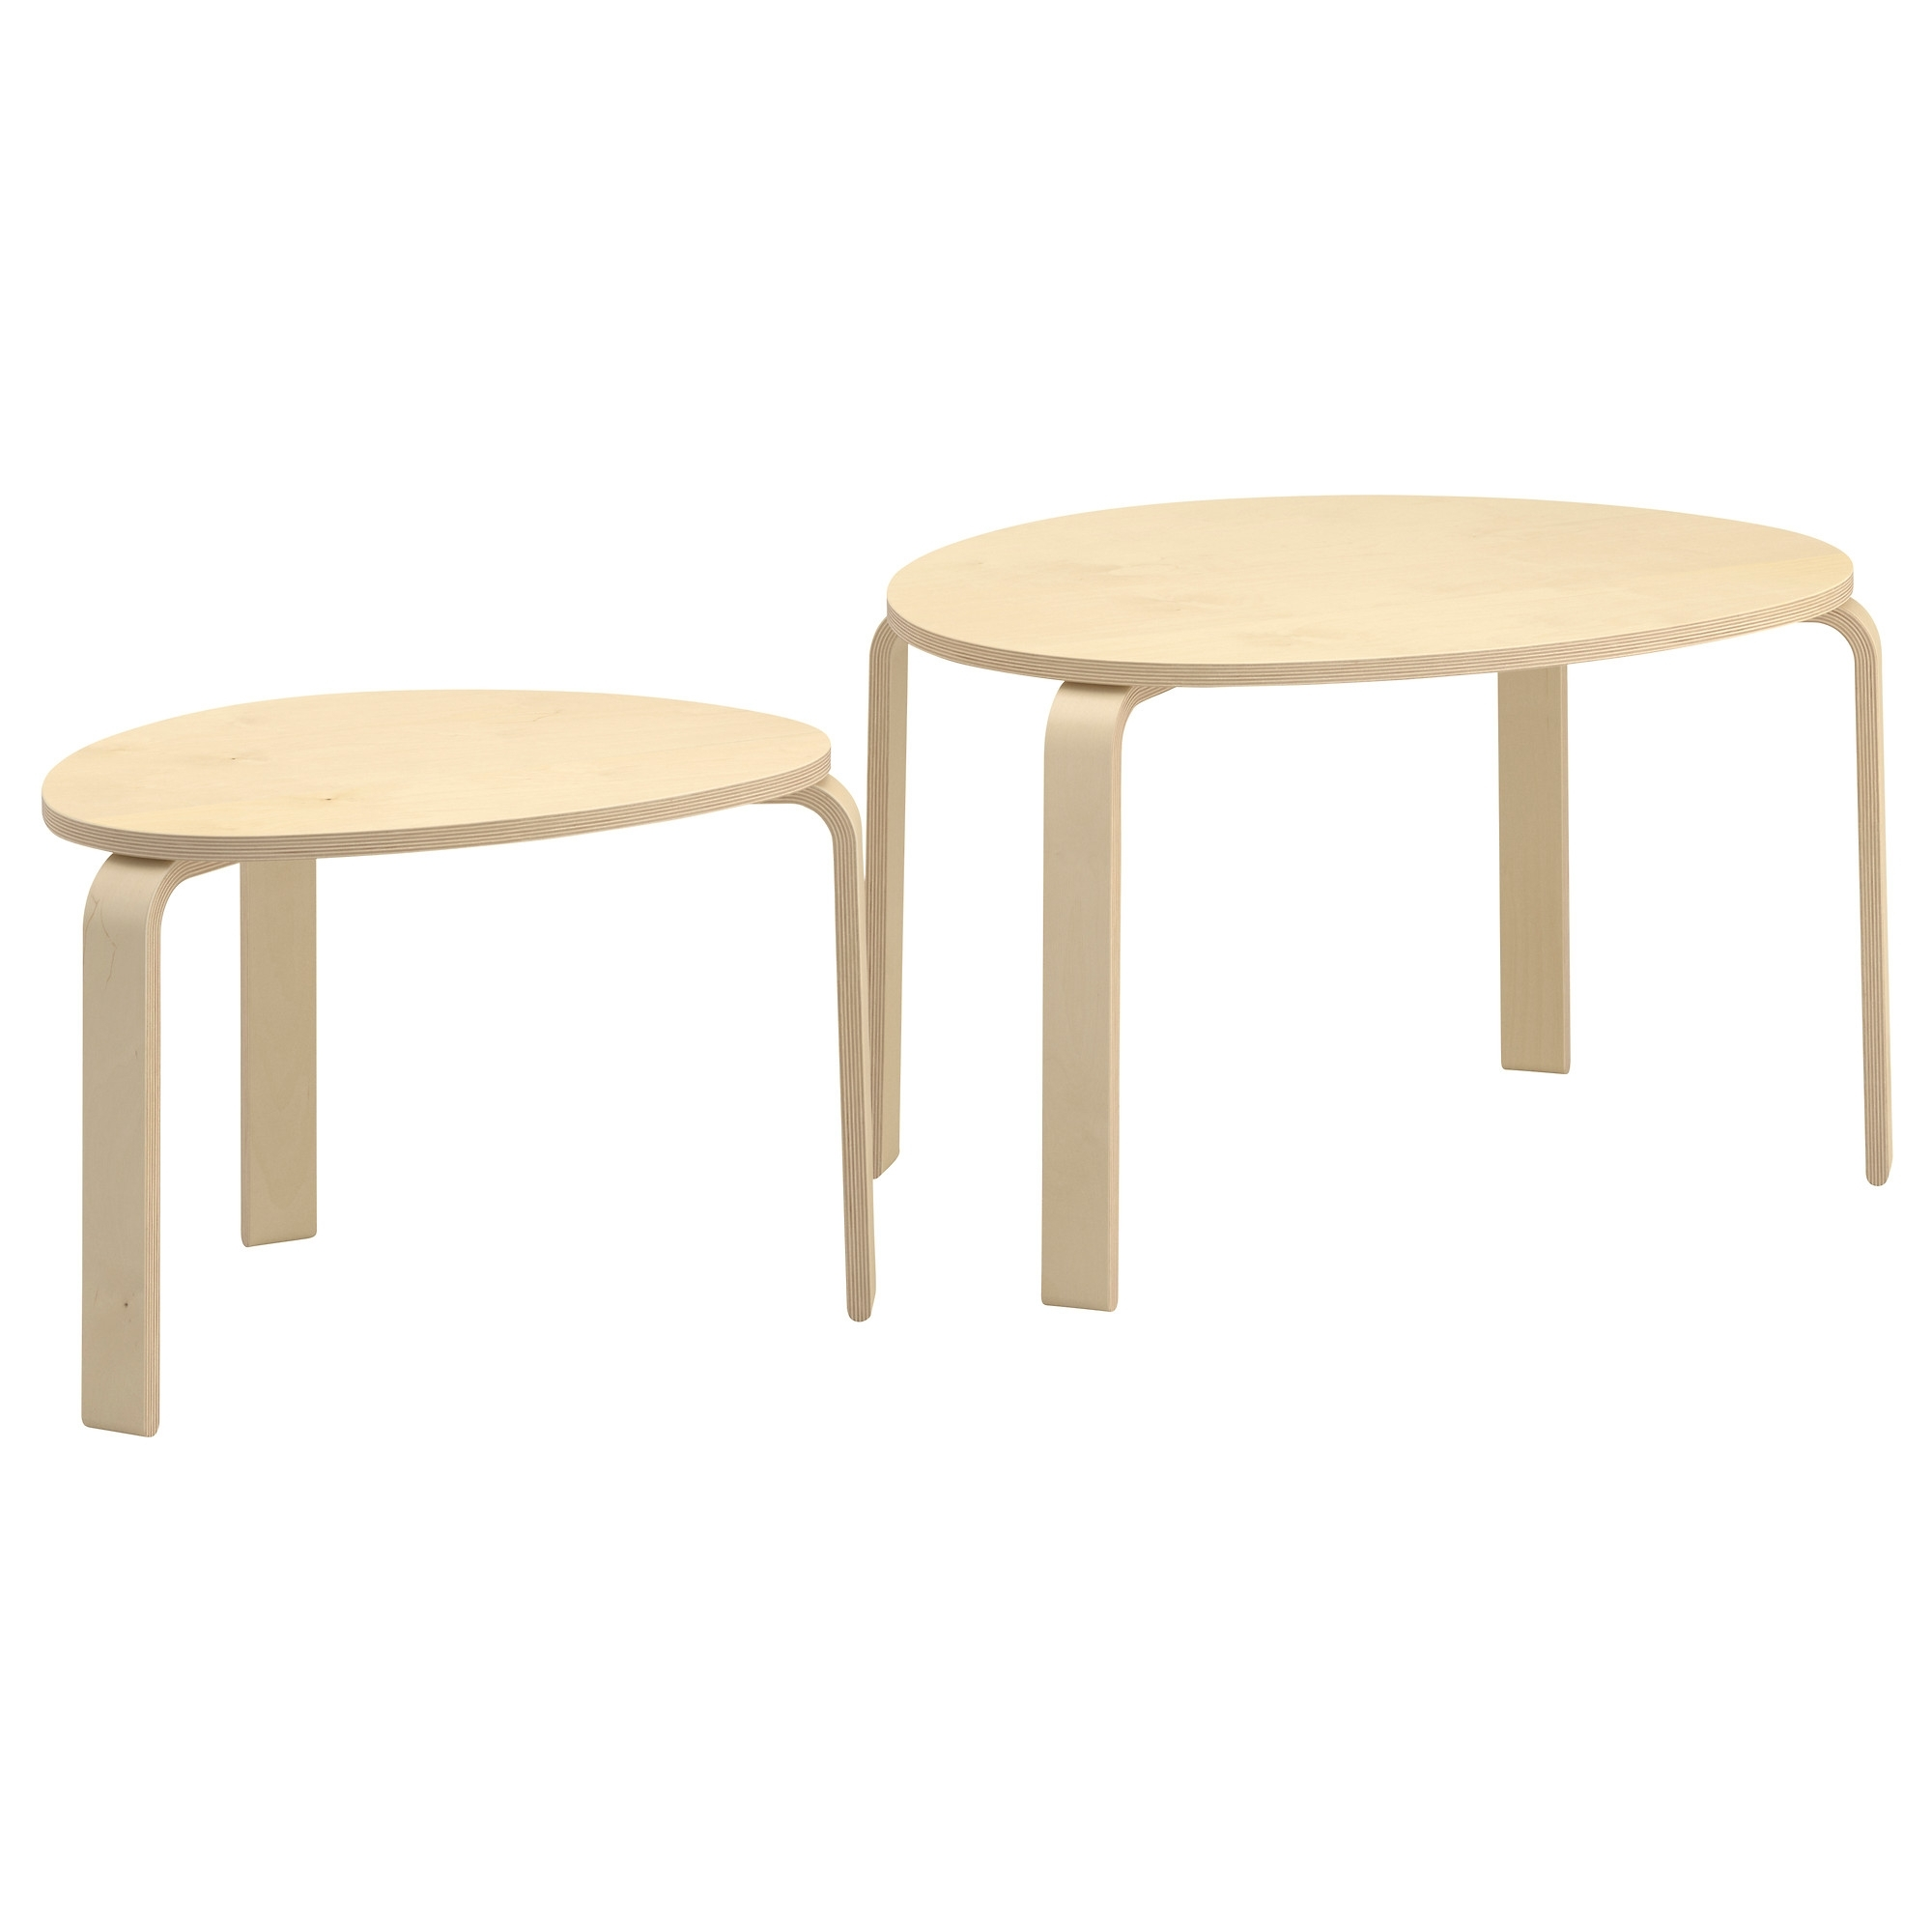 Recent Set Of Nesting Coffee Tables Within Ikea Latvia – Shop For Furniture, Lighting, Home Accessories & More (View 13 of 20)